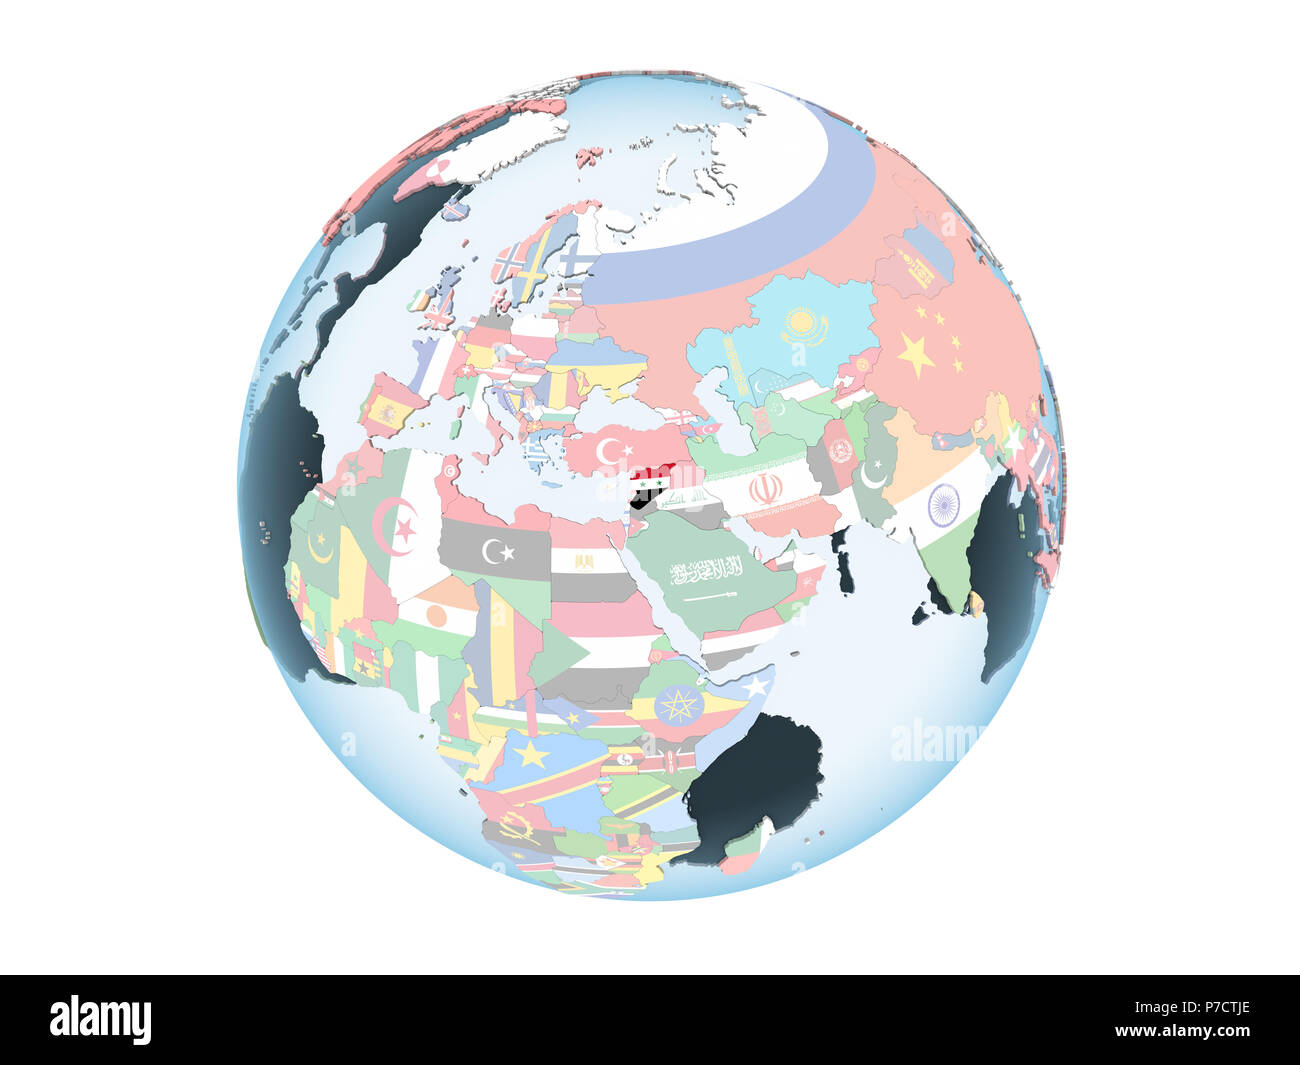 Syria on bright political globe with embedded flag. 3D illustration isolated on white background. - Stock Image